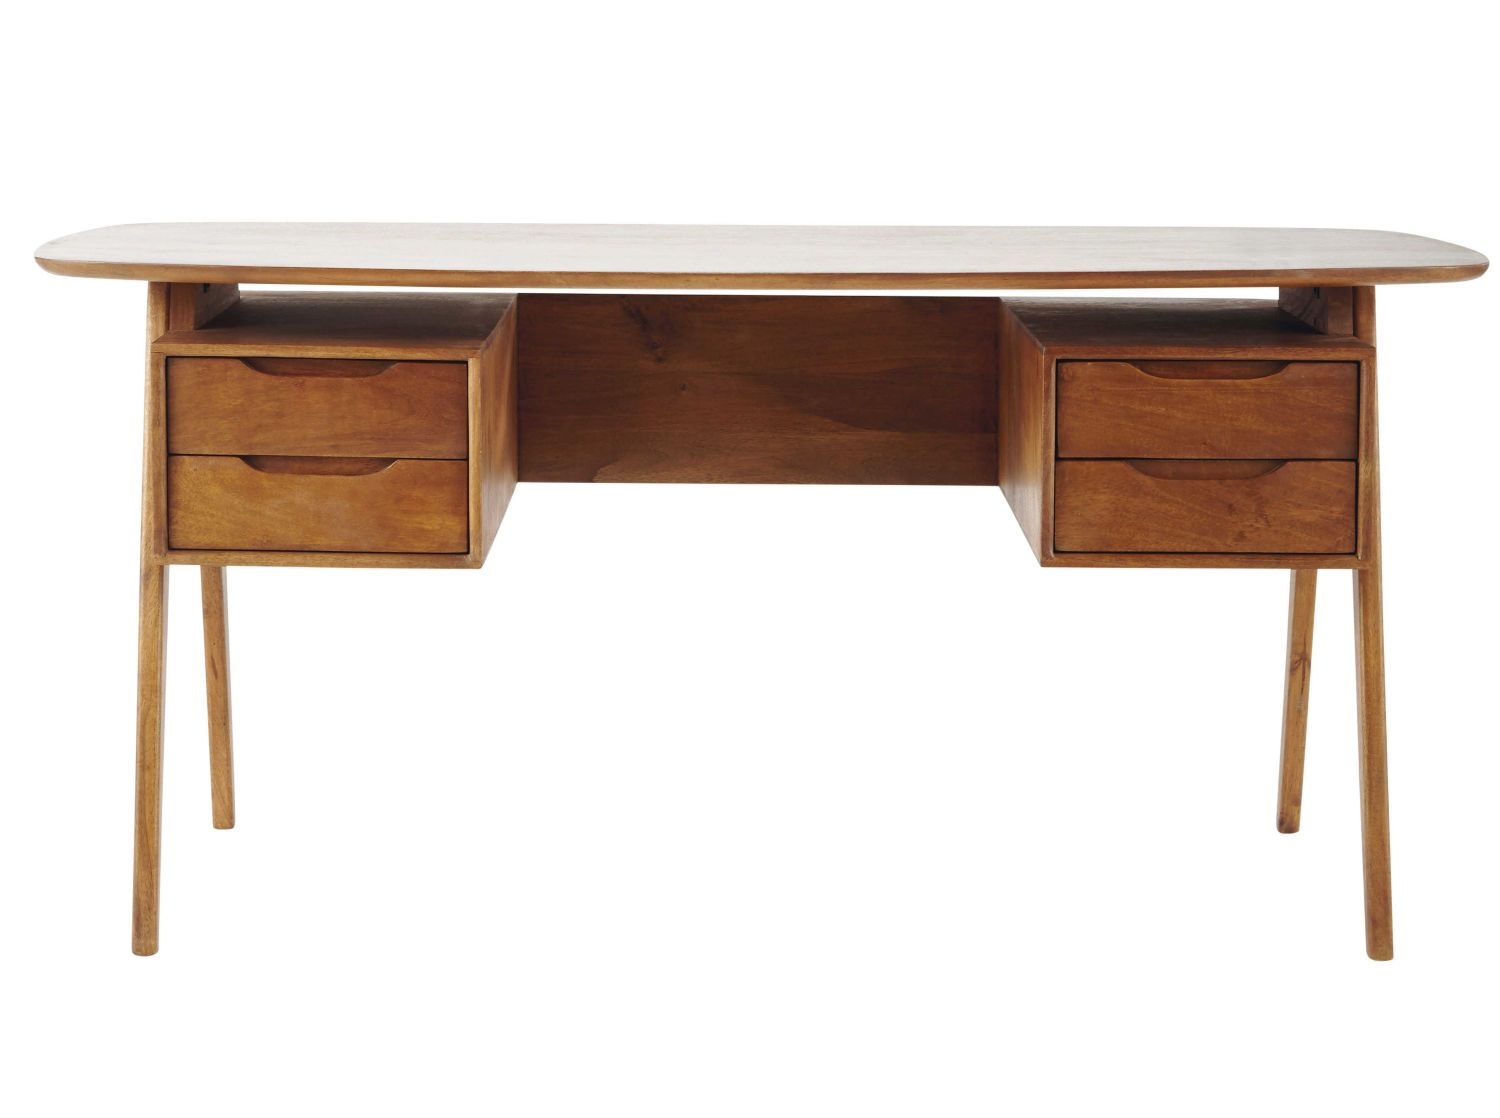 Houten Bureau Mangohouten Bureau In Vintage Stijl Work Study Desk Furniture